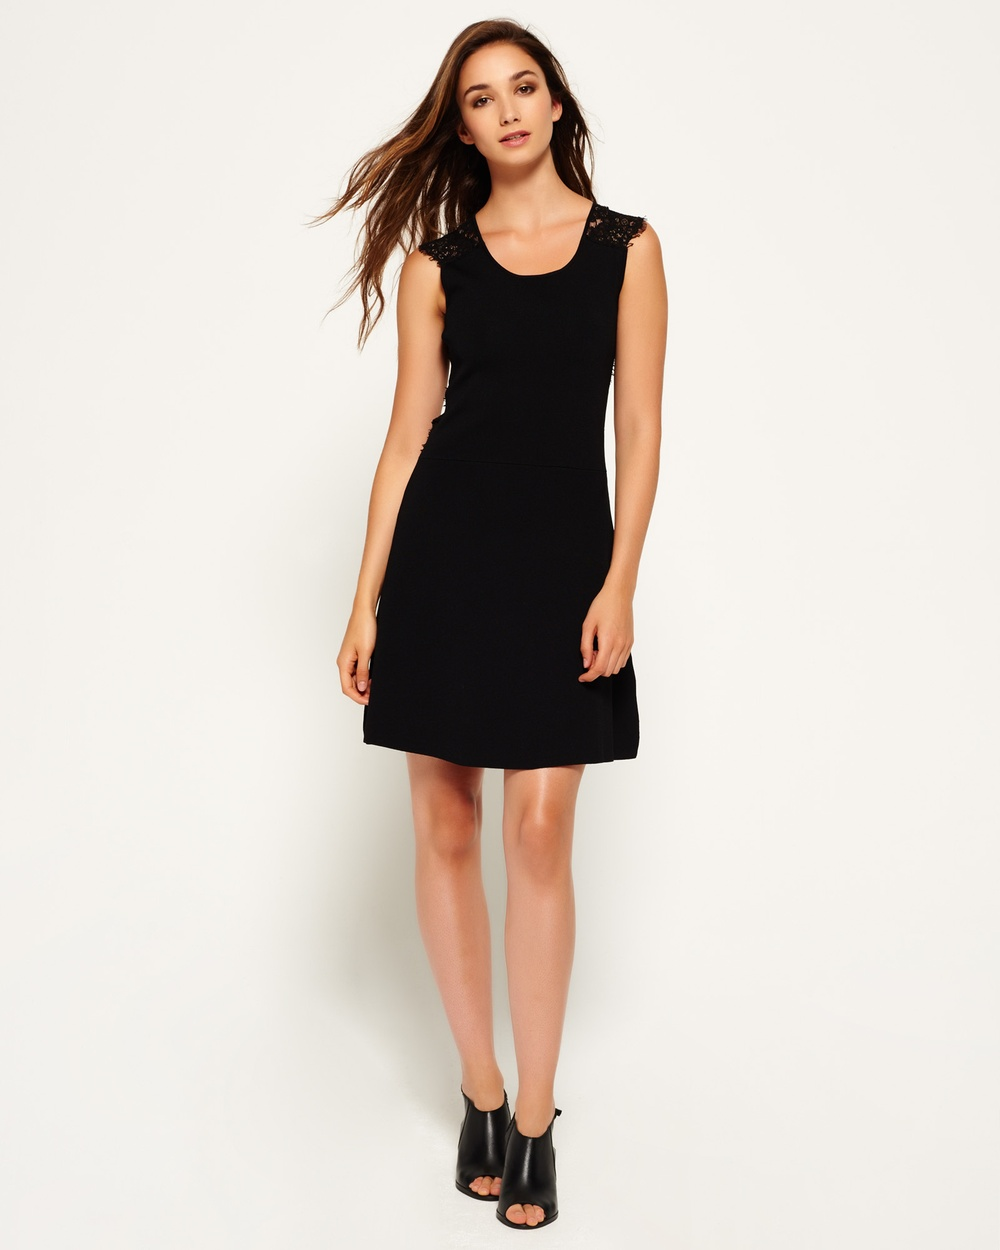 Superdry Alina Lace Knitted Dress Dresses BLACK Alina Lace Knitted Dress